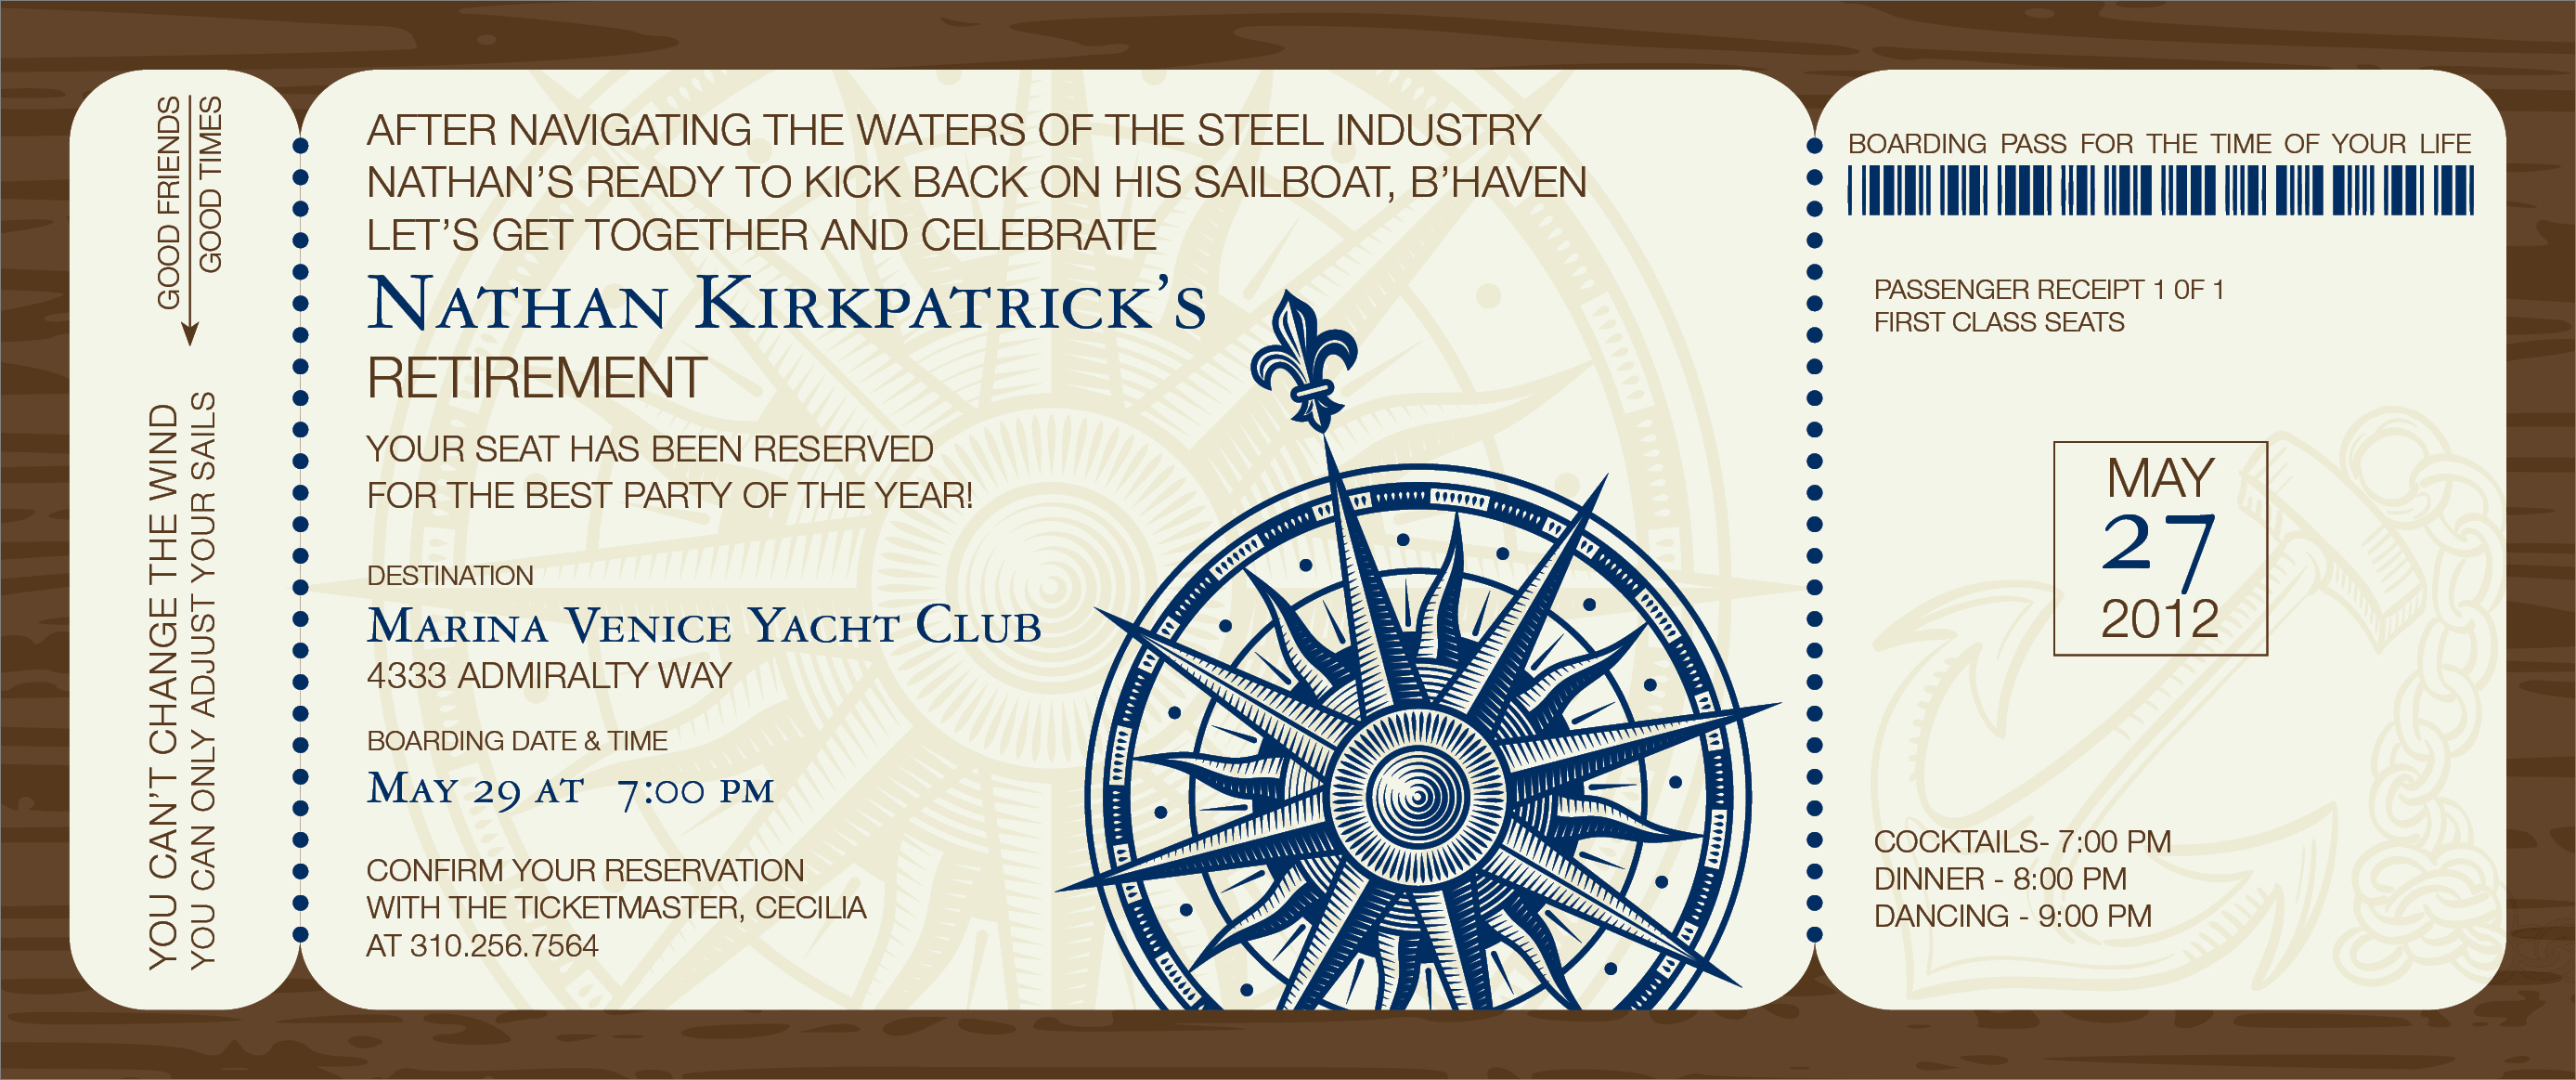 "Quick View - ID-1148 - ""Nautical Boarding Pass Invitation"""